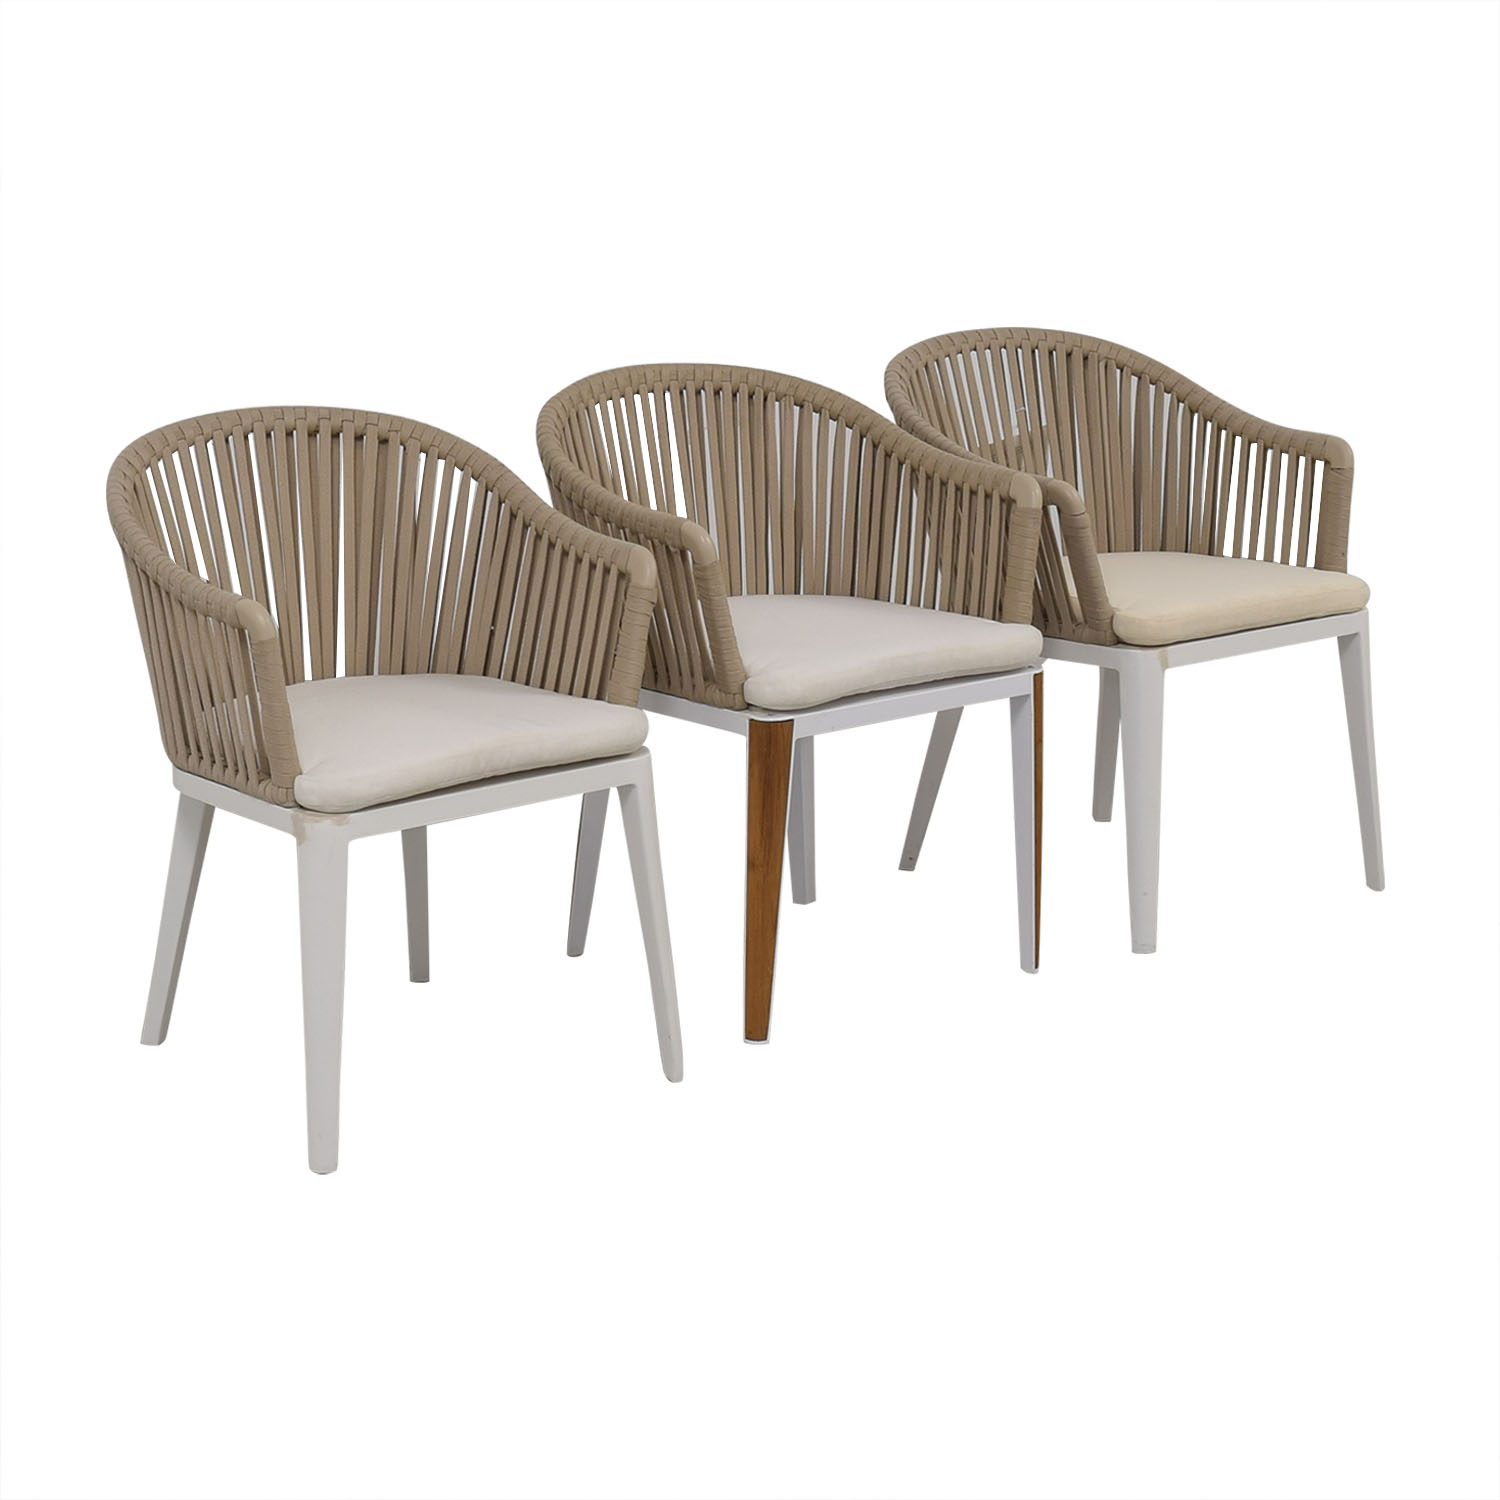 Control Brand Control Brand Lounge Chairs white